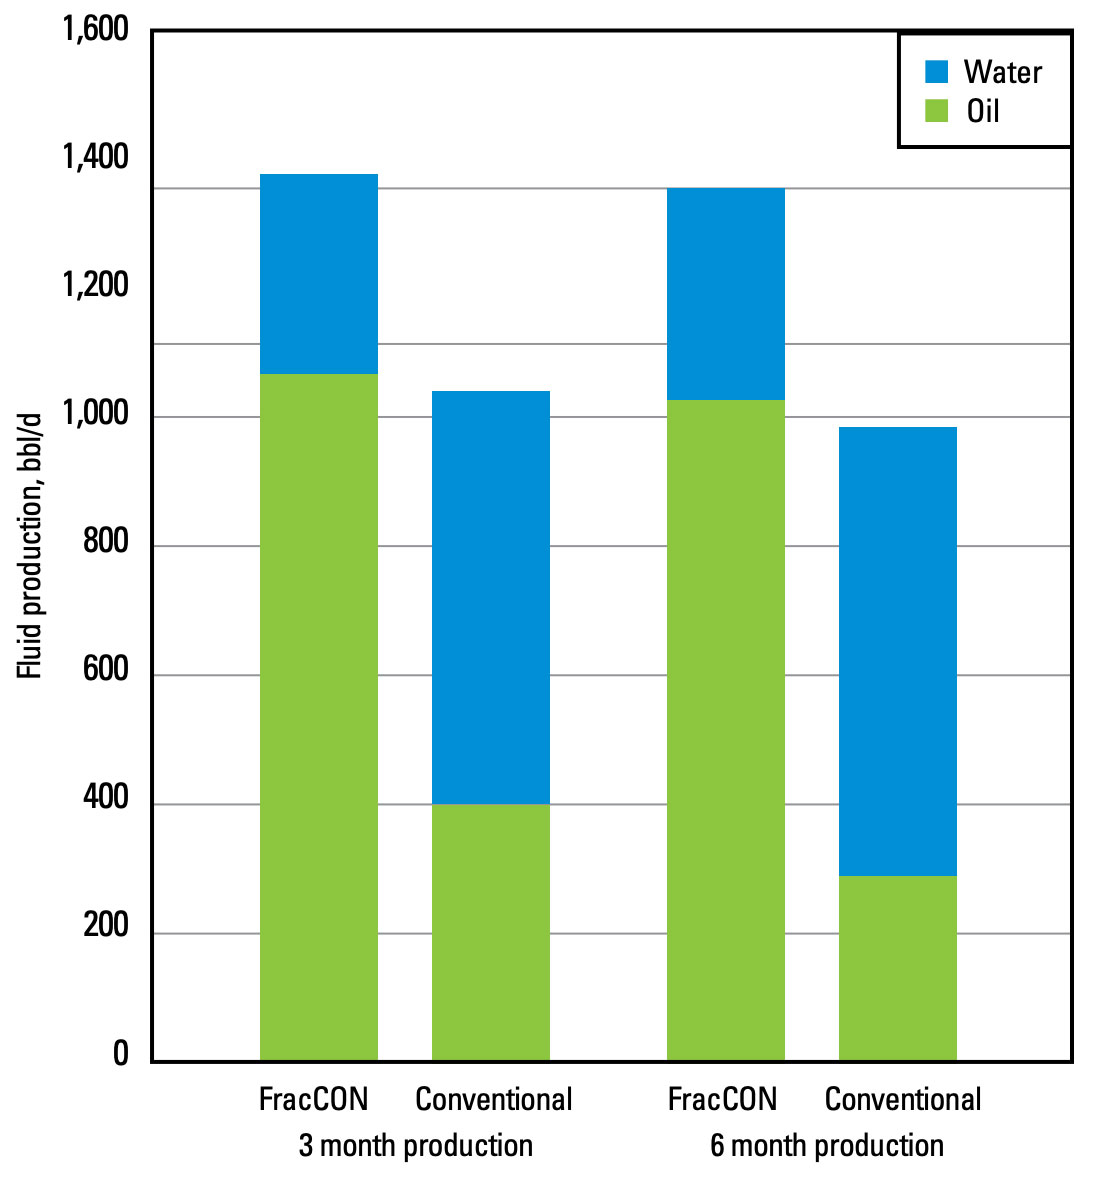 The FracCON treatment markedly reduced water production compared with a conventional treatment.